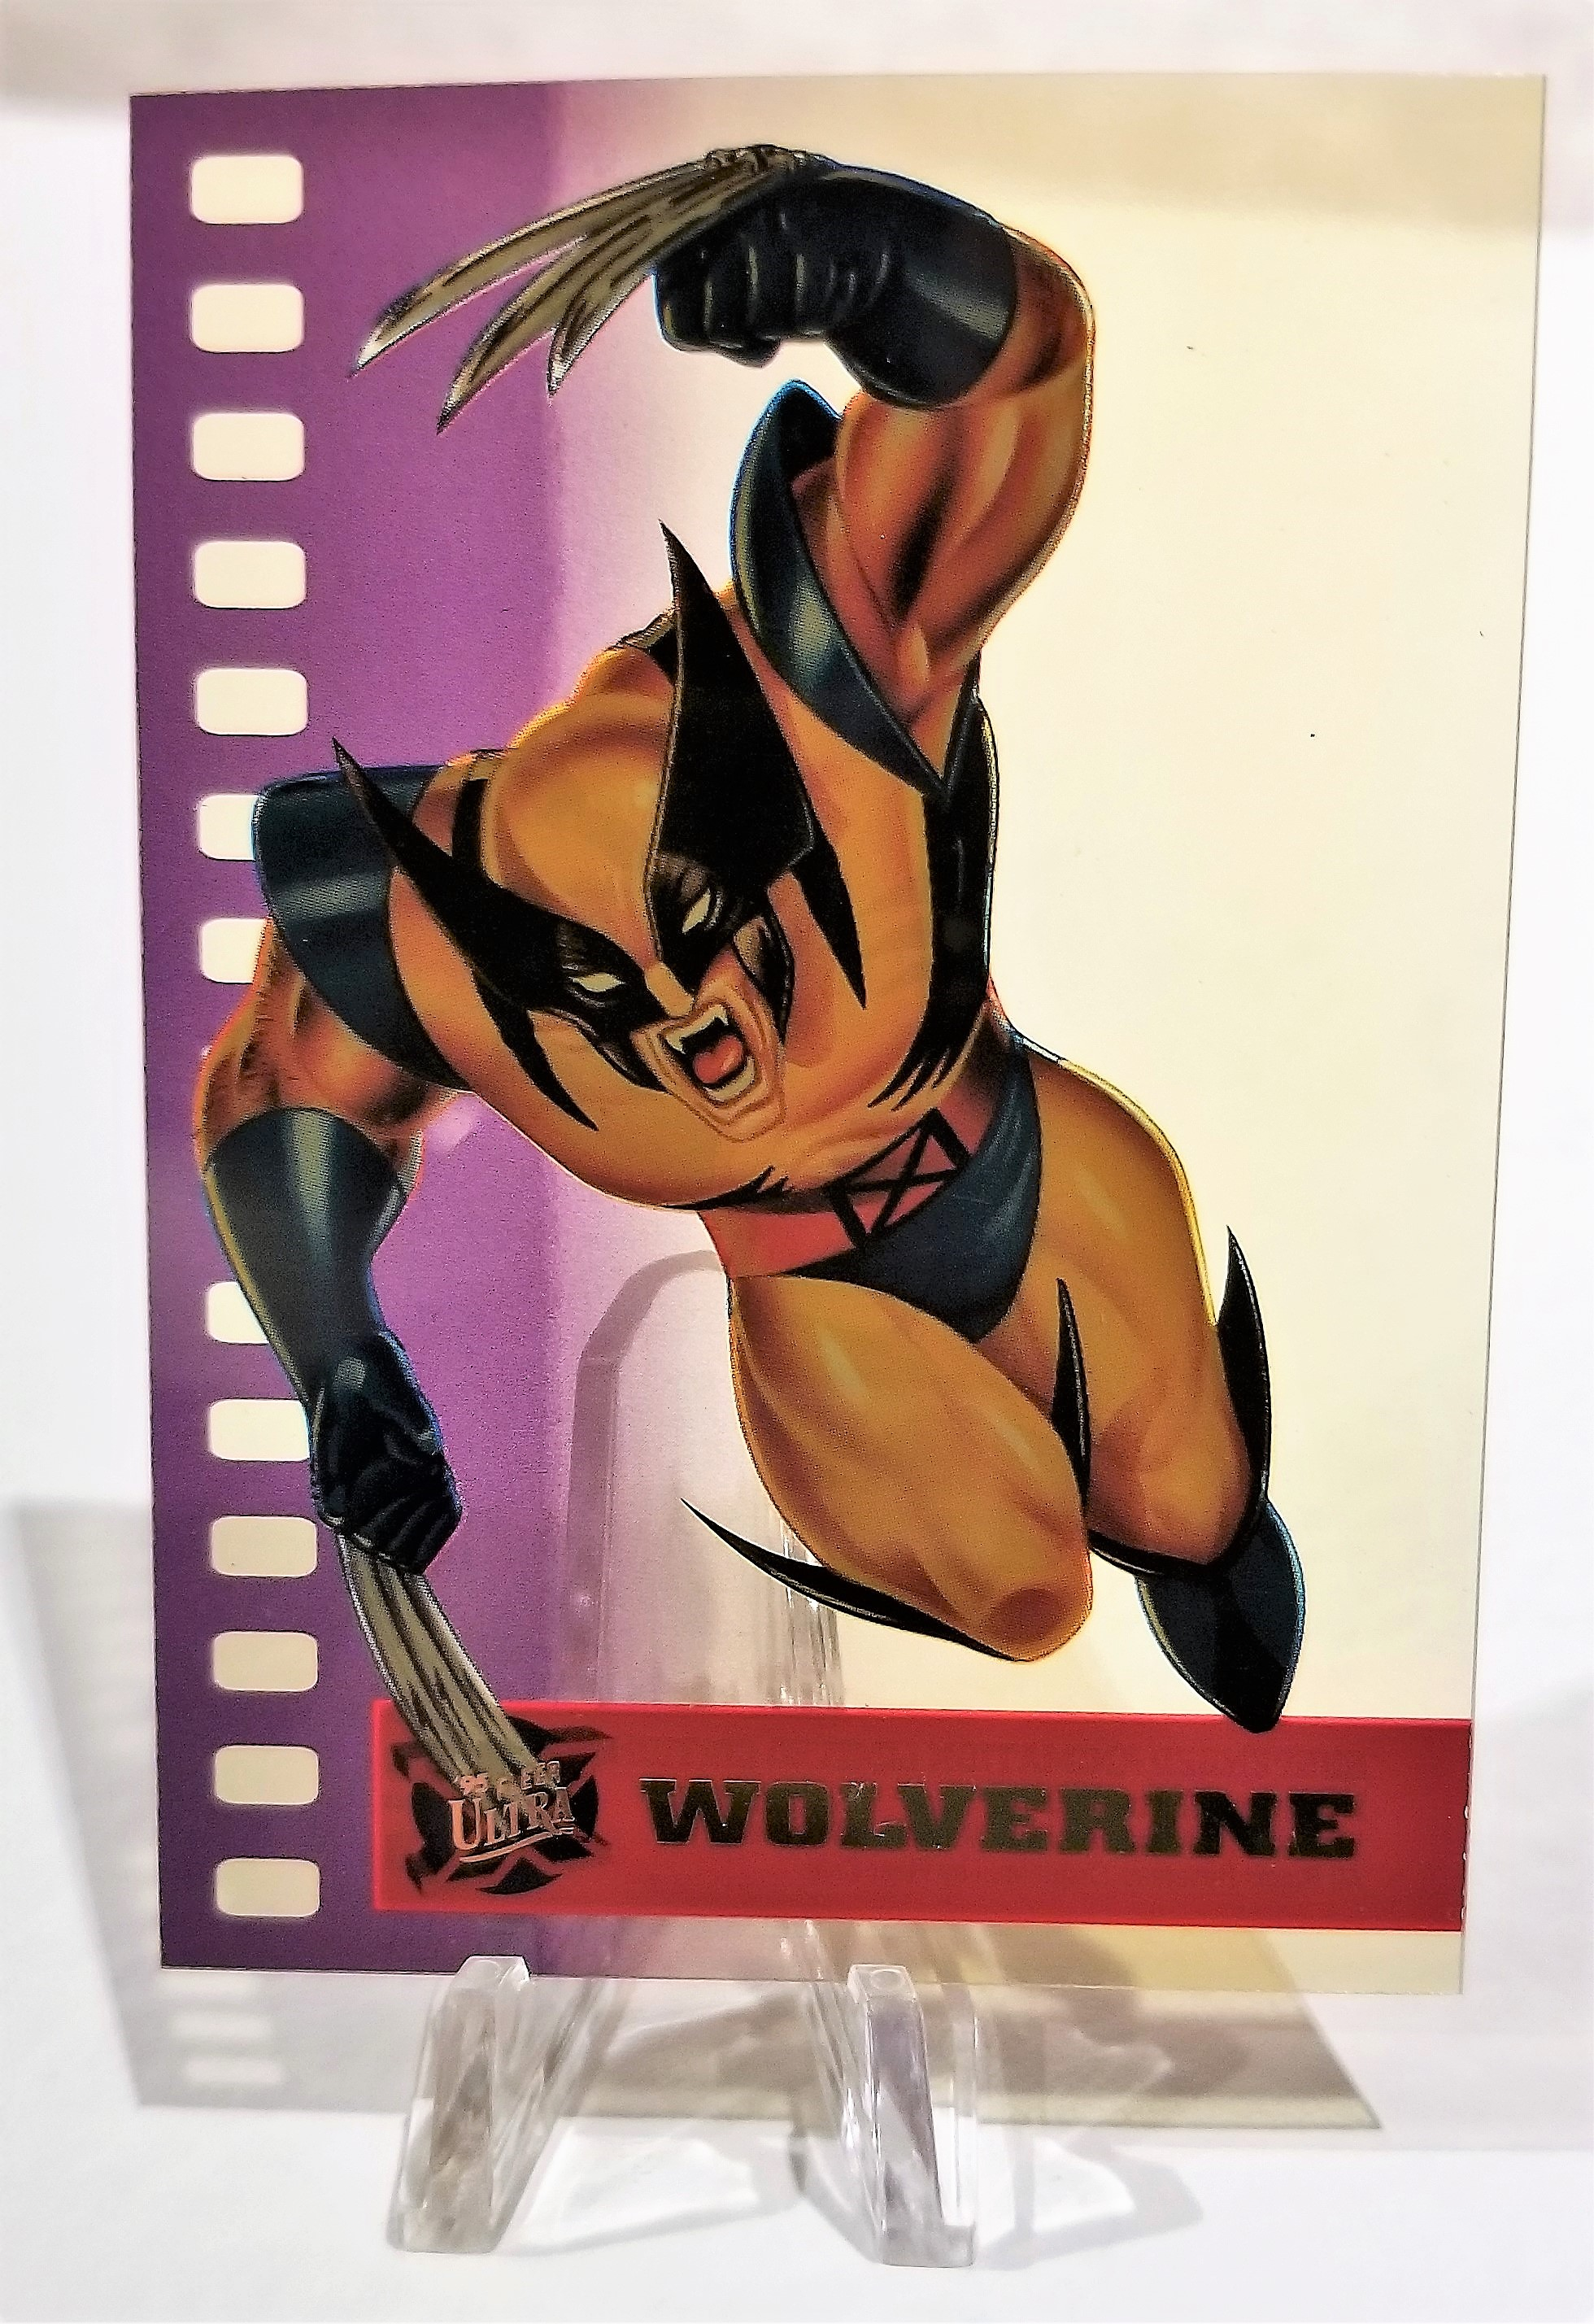 Gary Ciccarelli's rendition of Wolverine, one of Marvel's most popular characters.